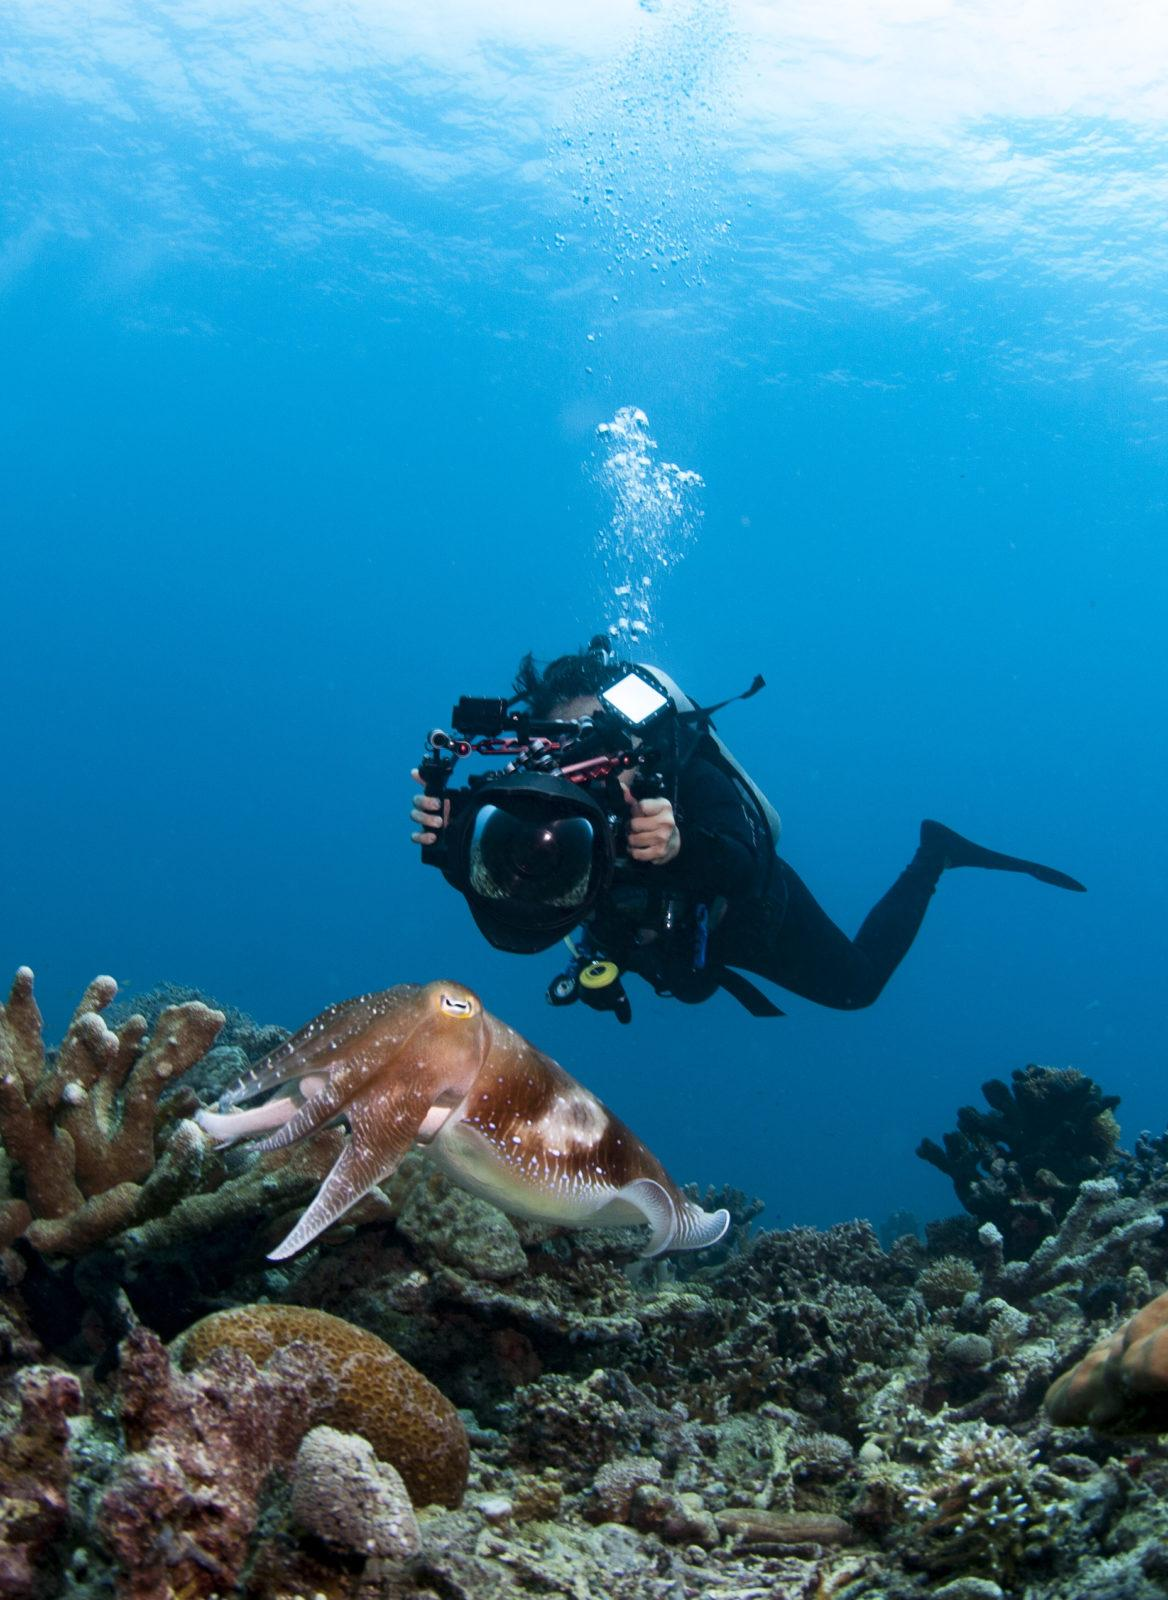 Underwater scenery at the natural reef of Lankayan